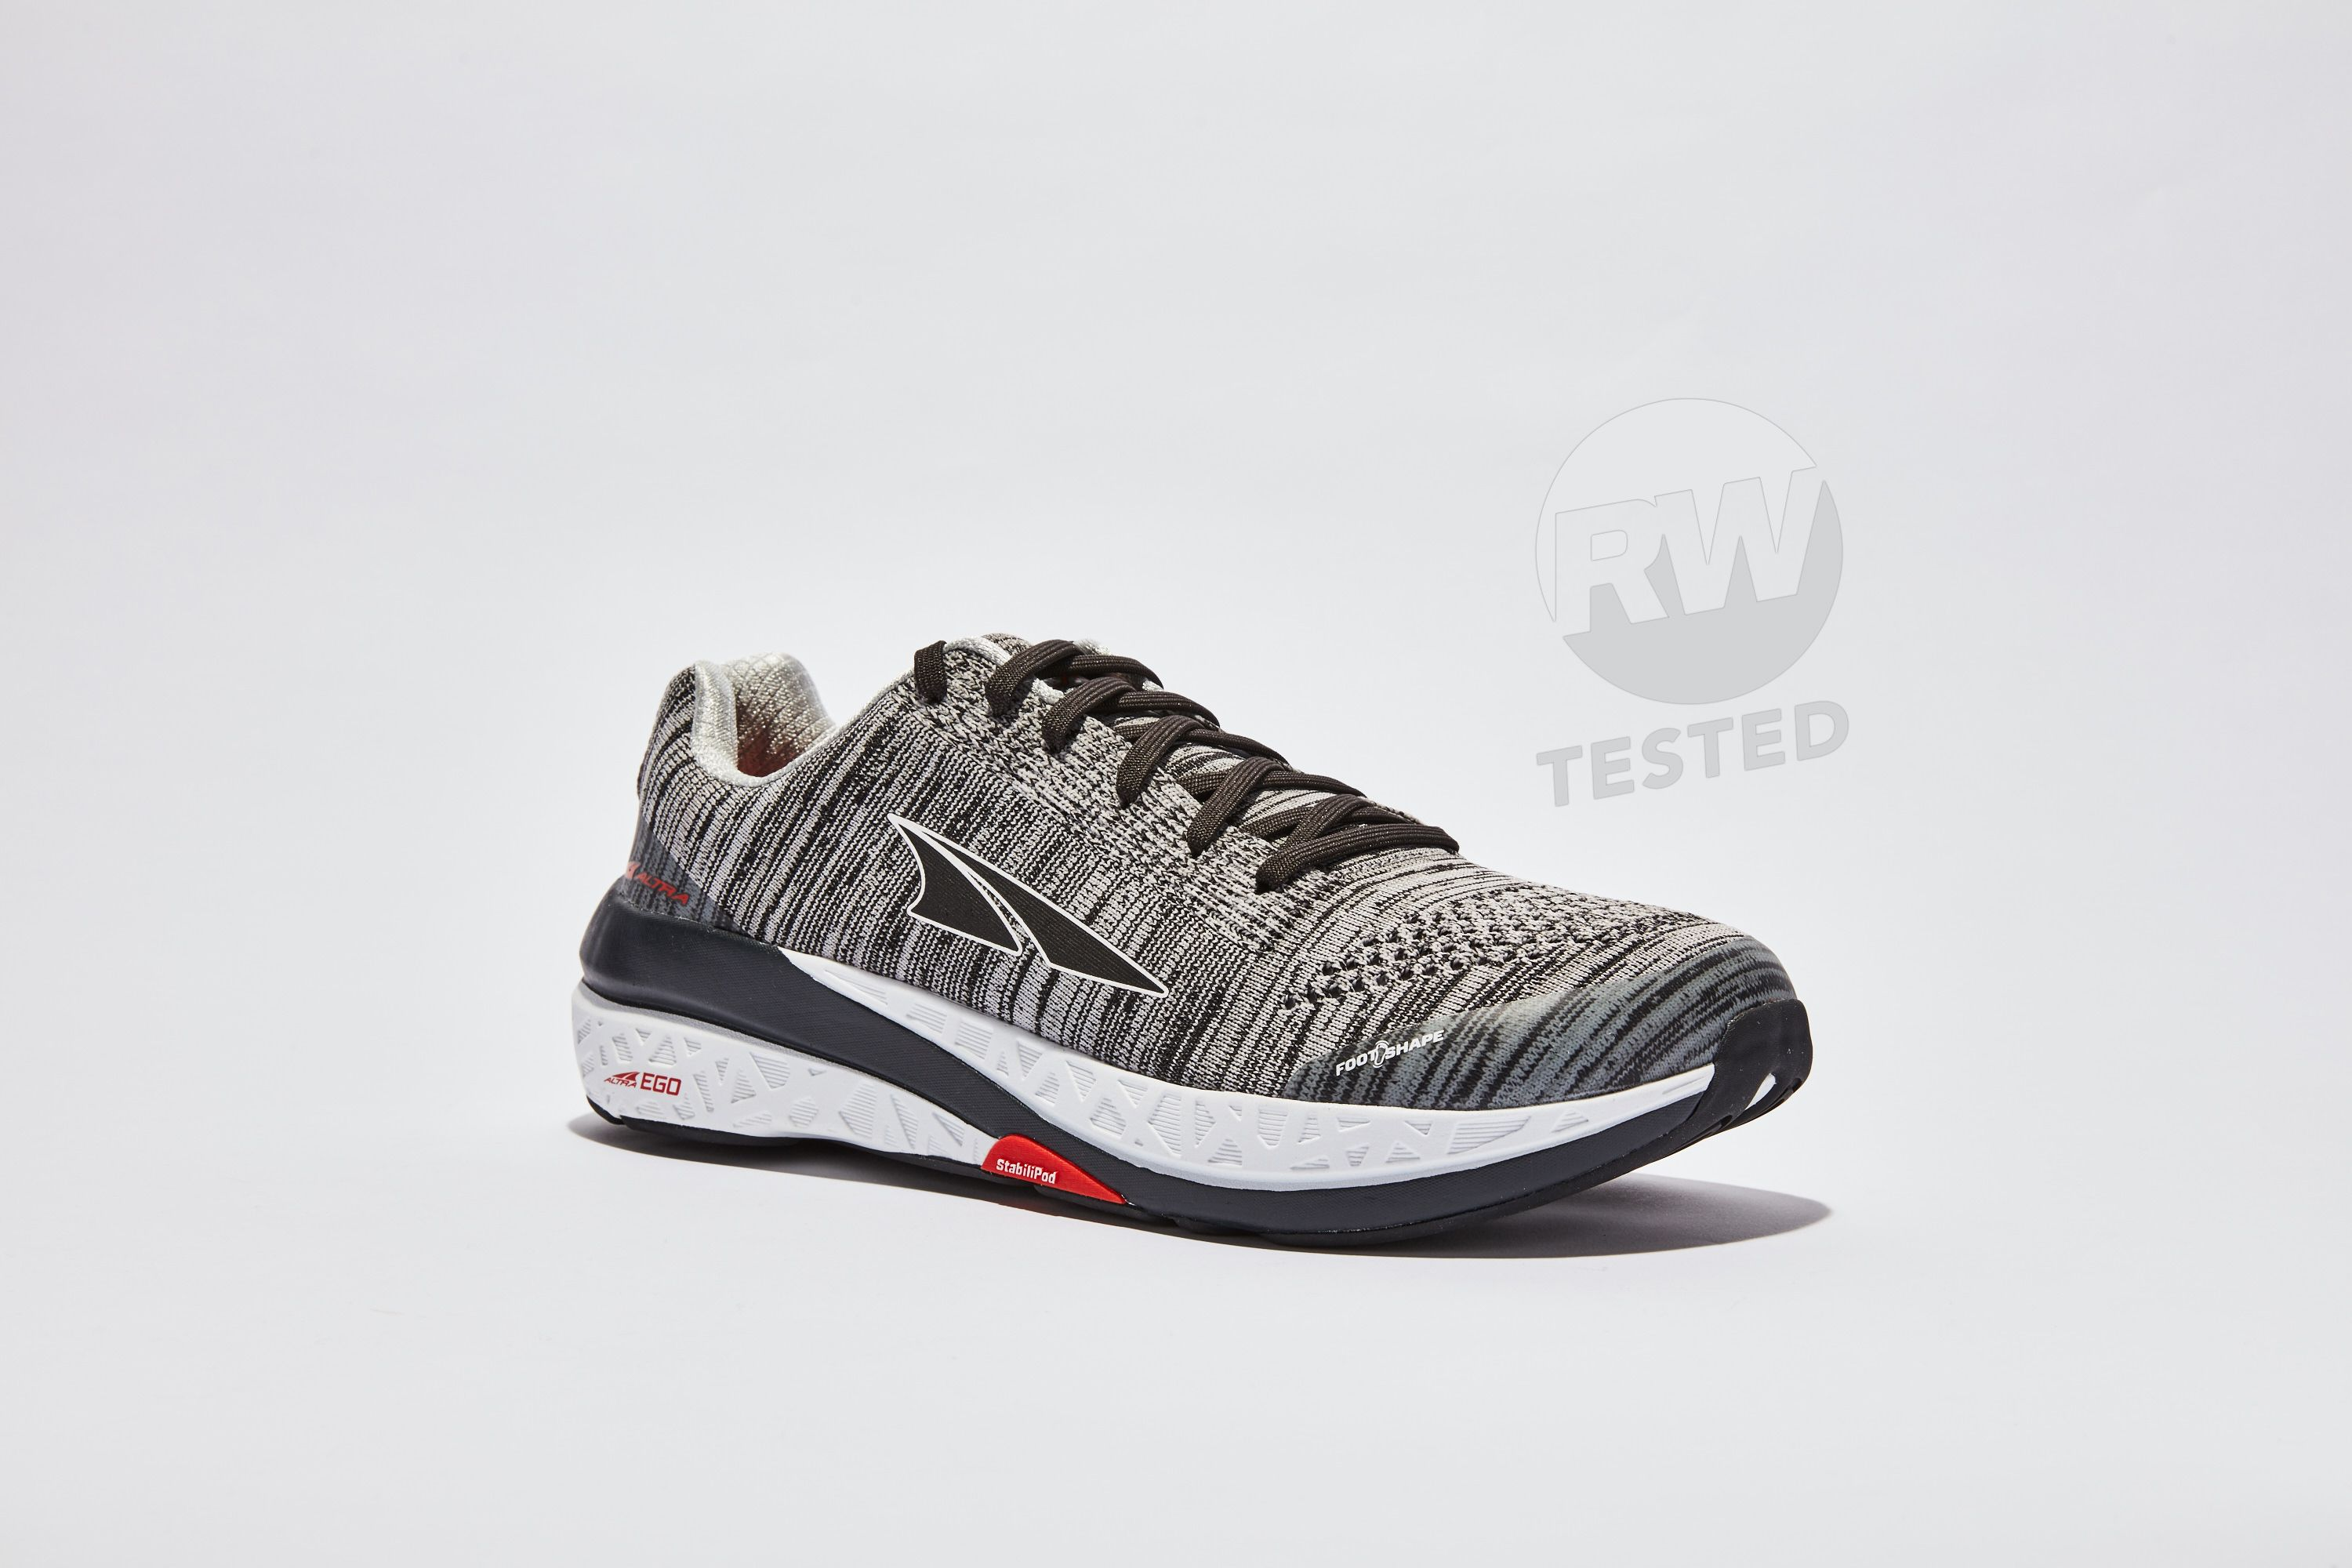 46a7dc94b1 The Ultra-Cushioned Altra Paradigm 4.0 Won't Batter Your Legs